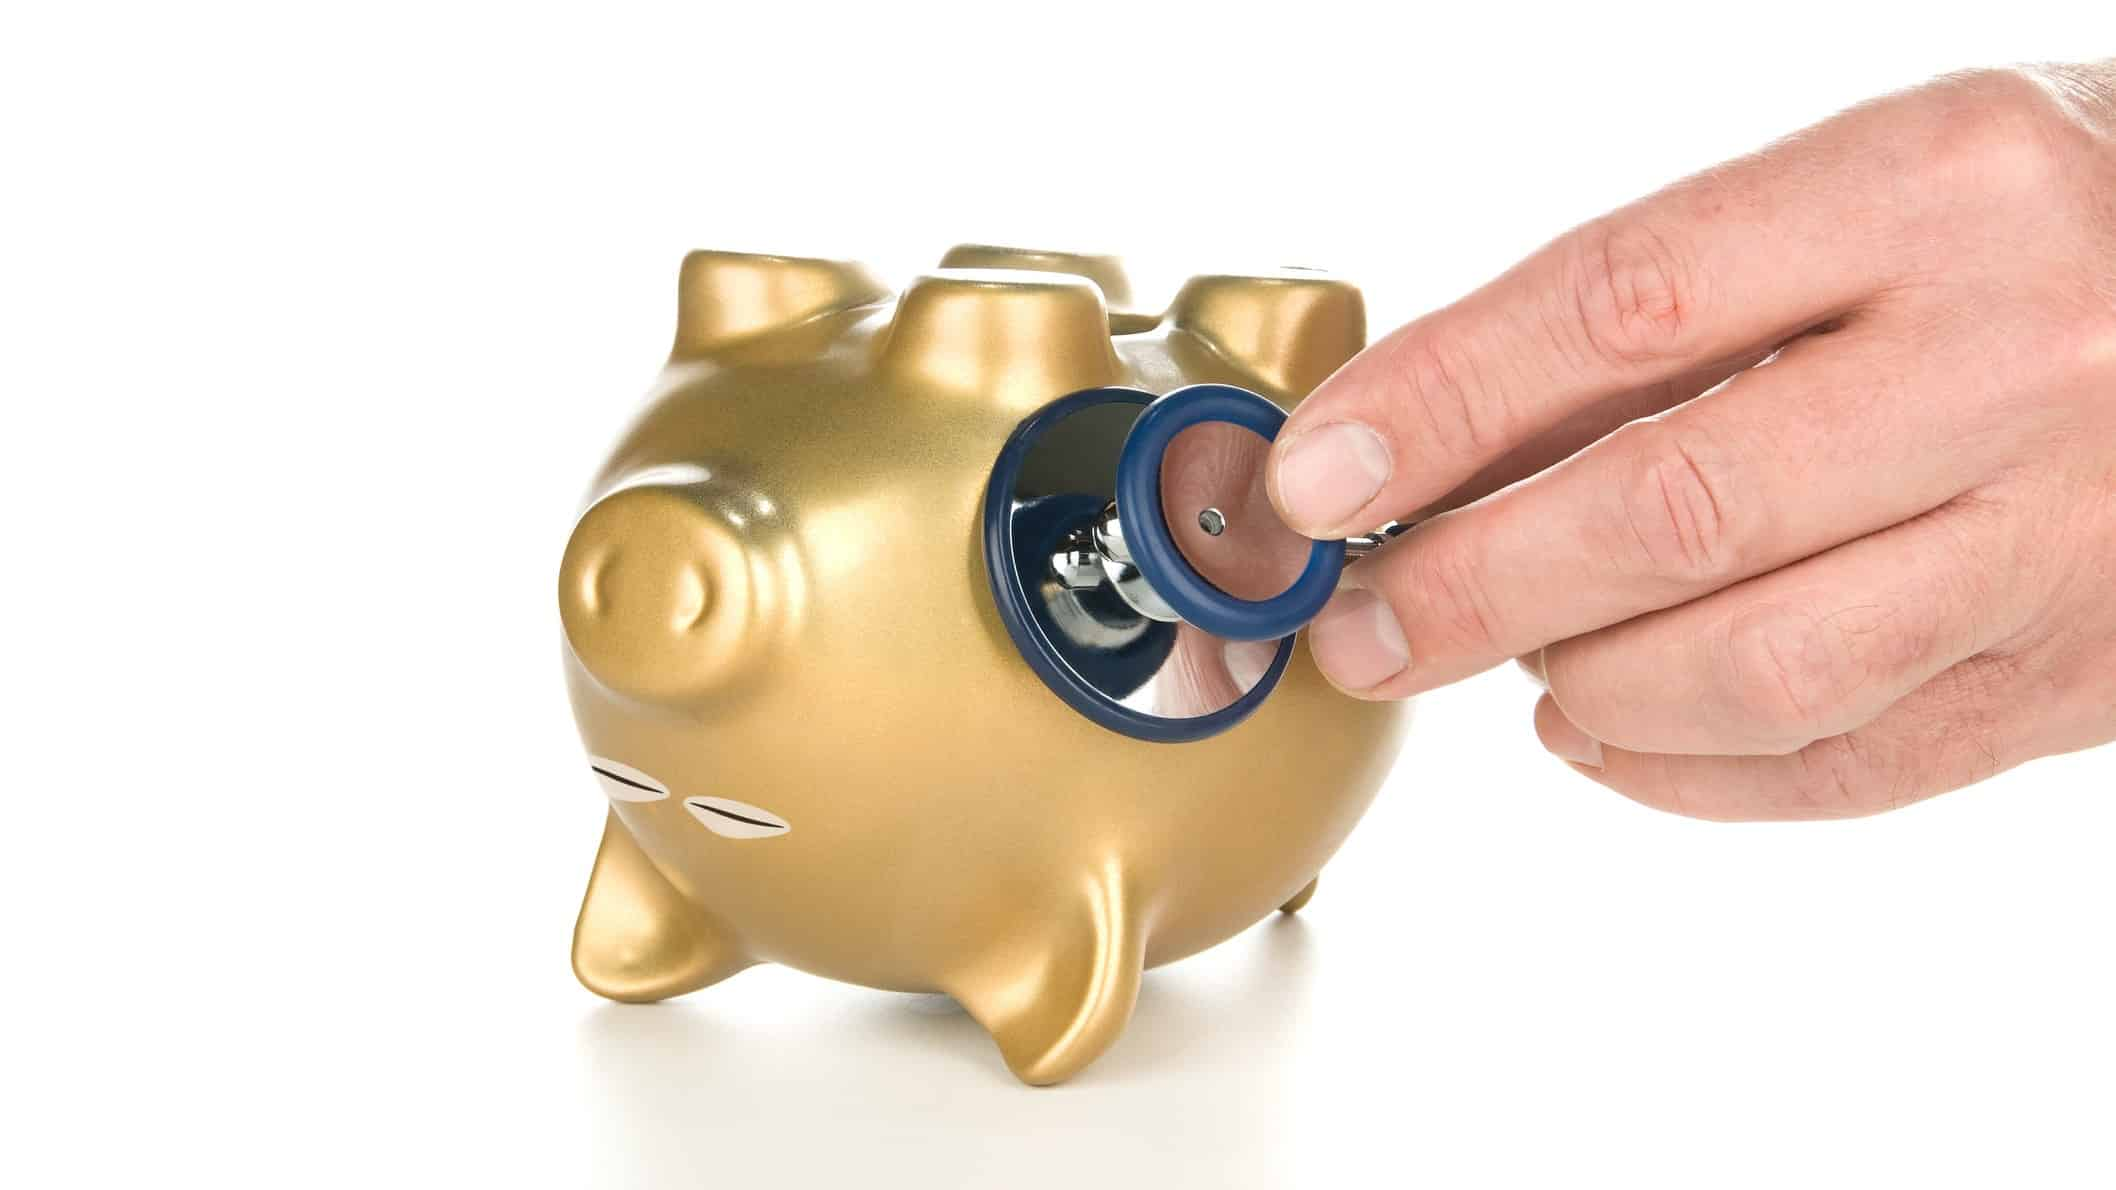 whether recessions cause deaths represented by docotor checking heart rate of upturned piggy bank